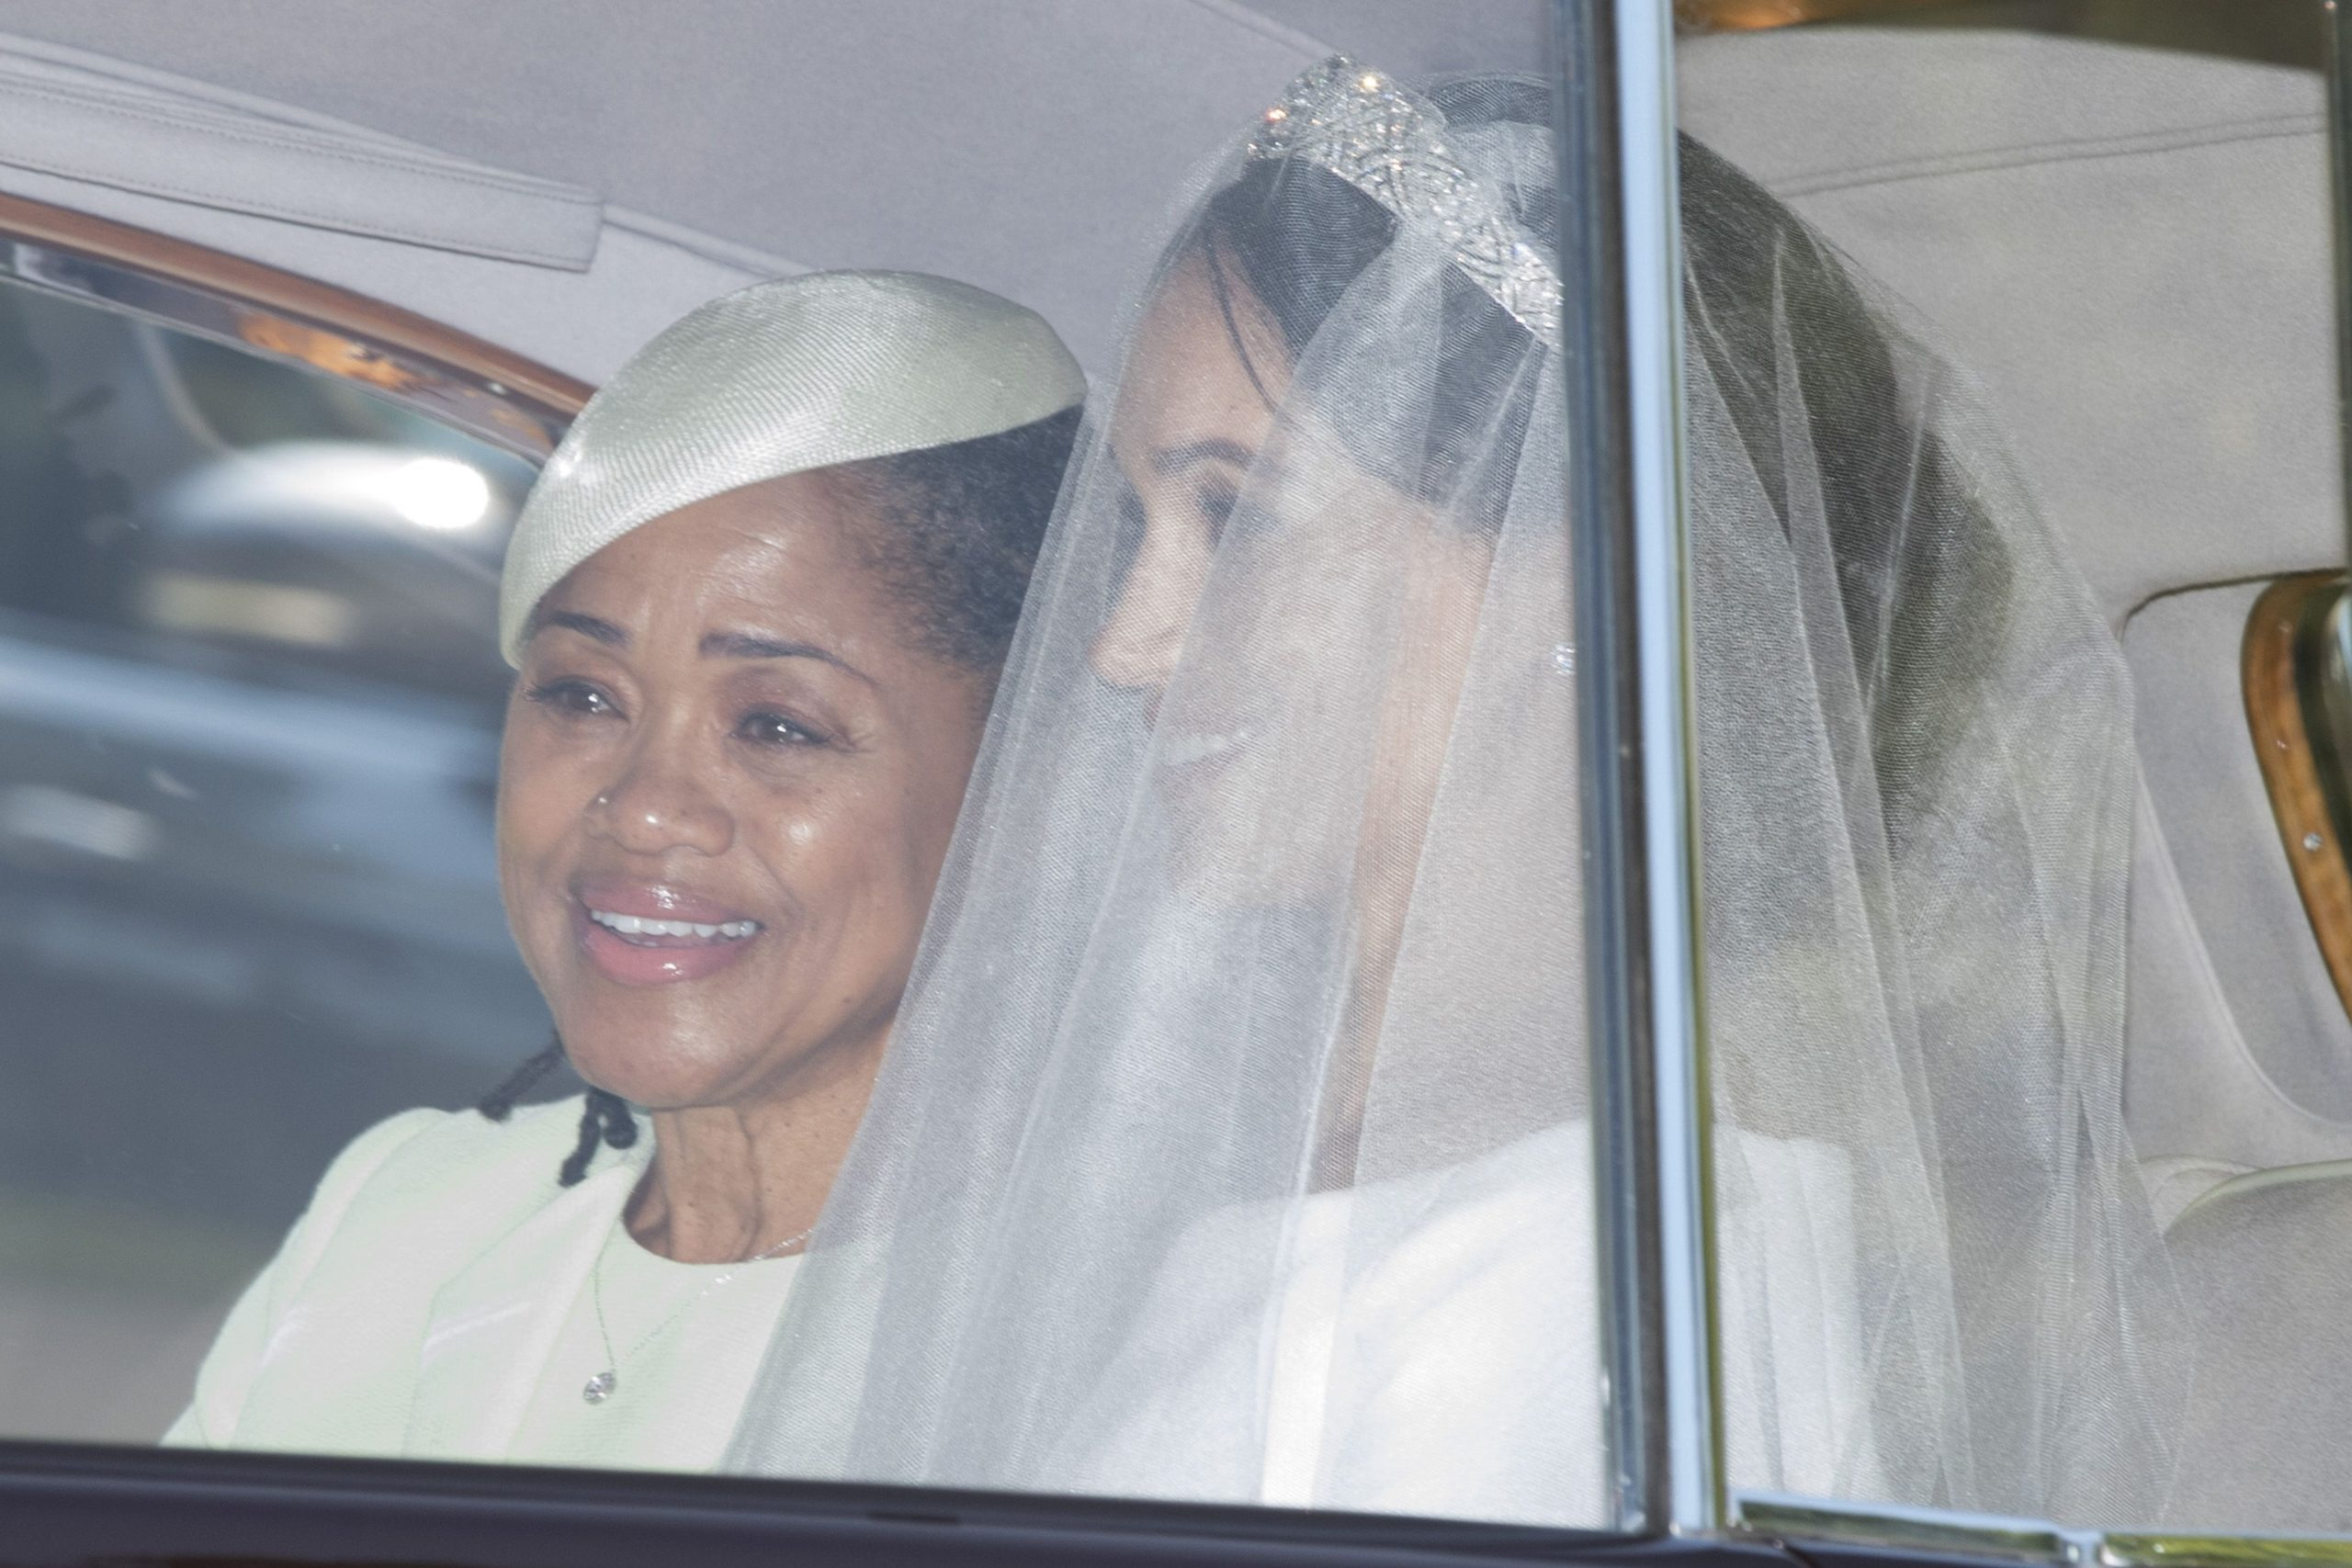 Meghan Markle looks like her Mother Doria Ragland In Unearthed Wedding Photos